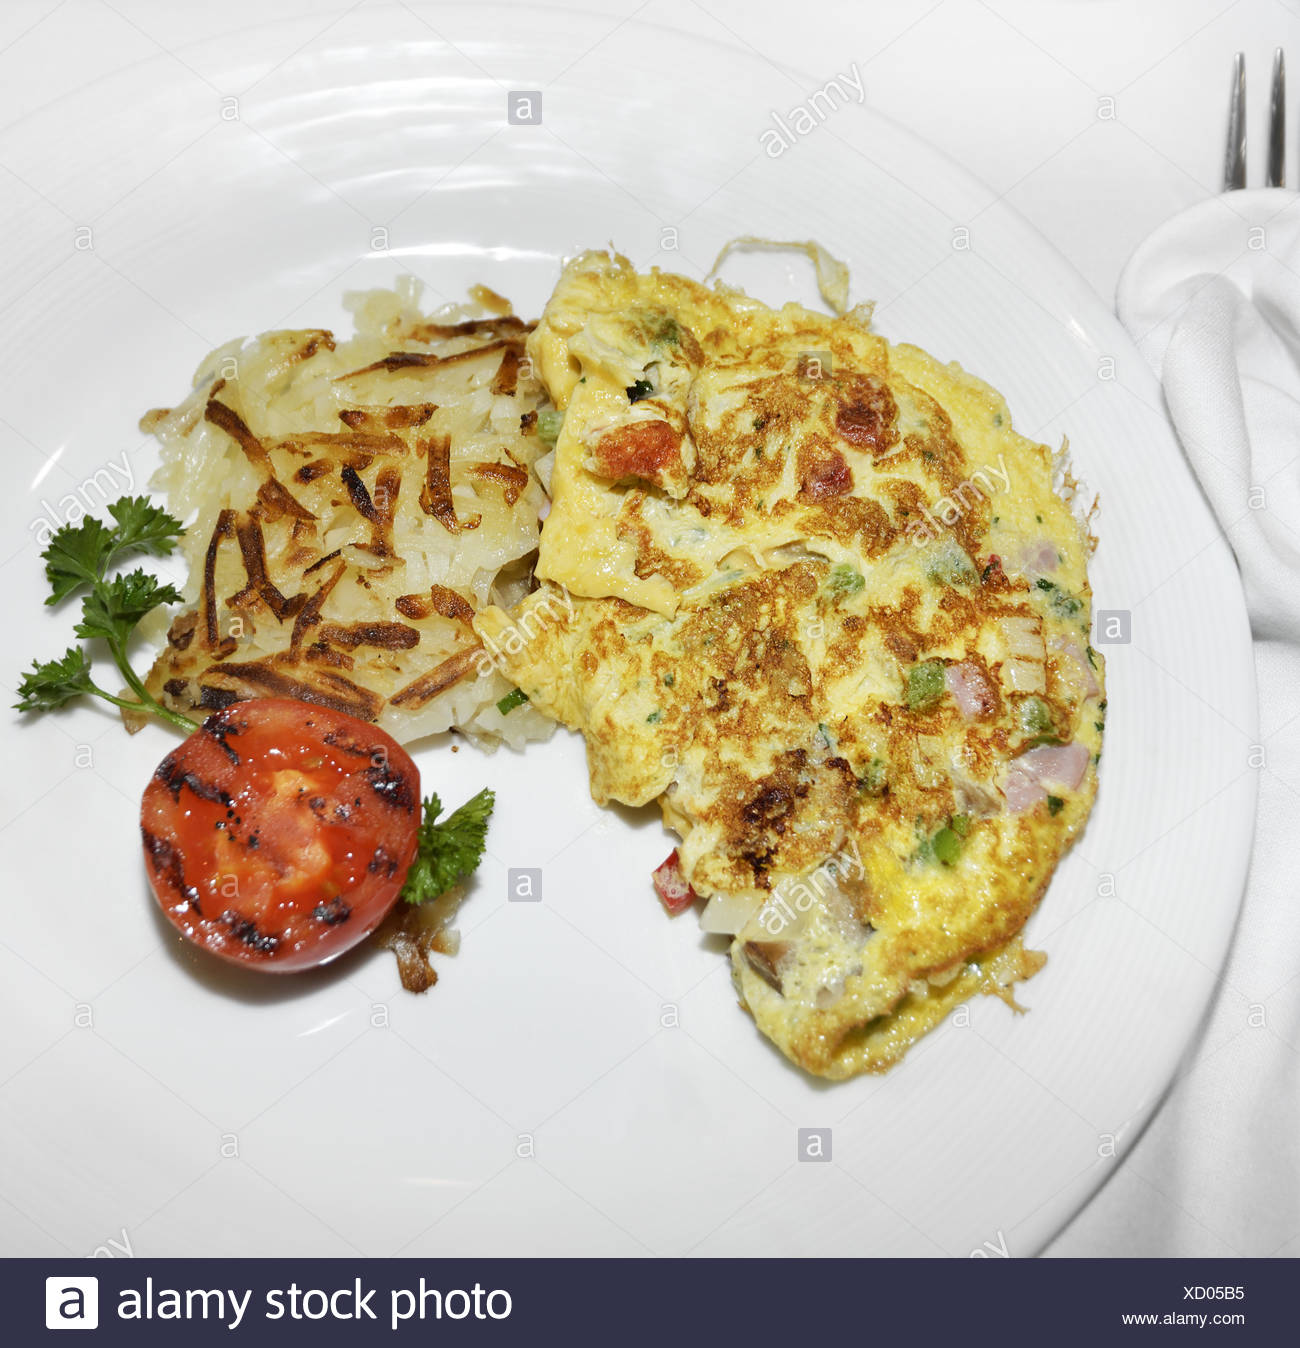 Omelet With Vegetables And Bacon - Stock Image